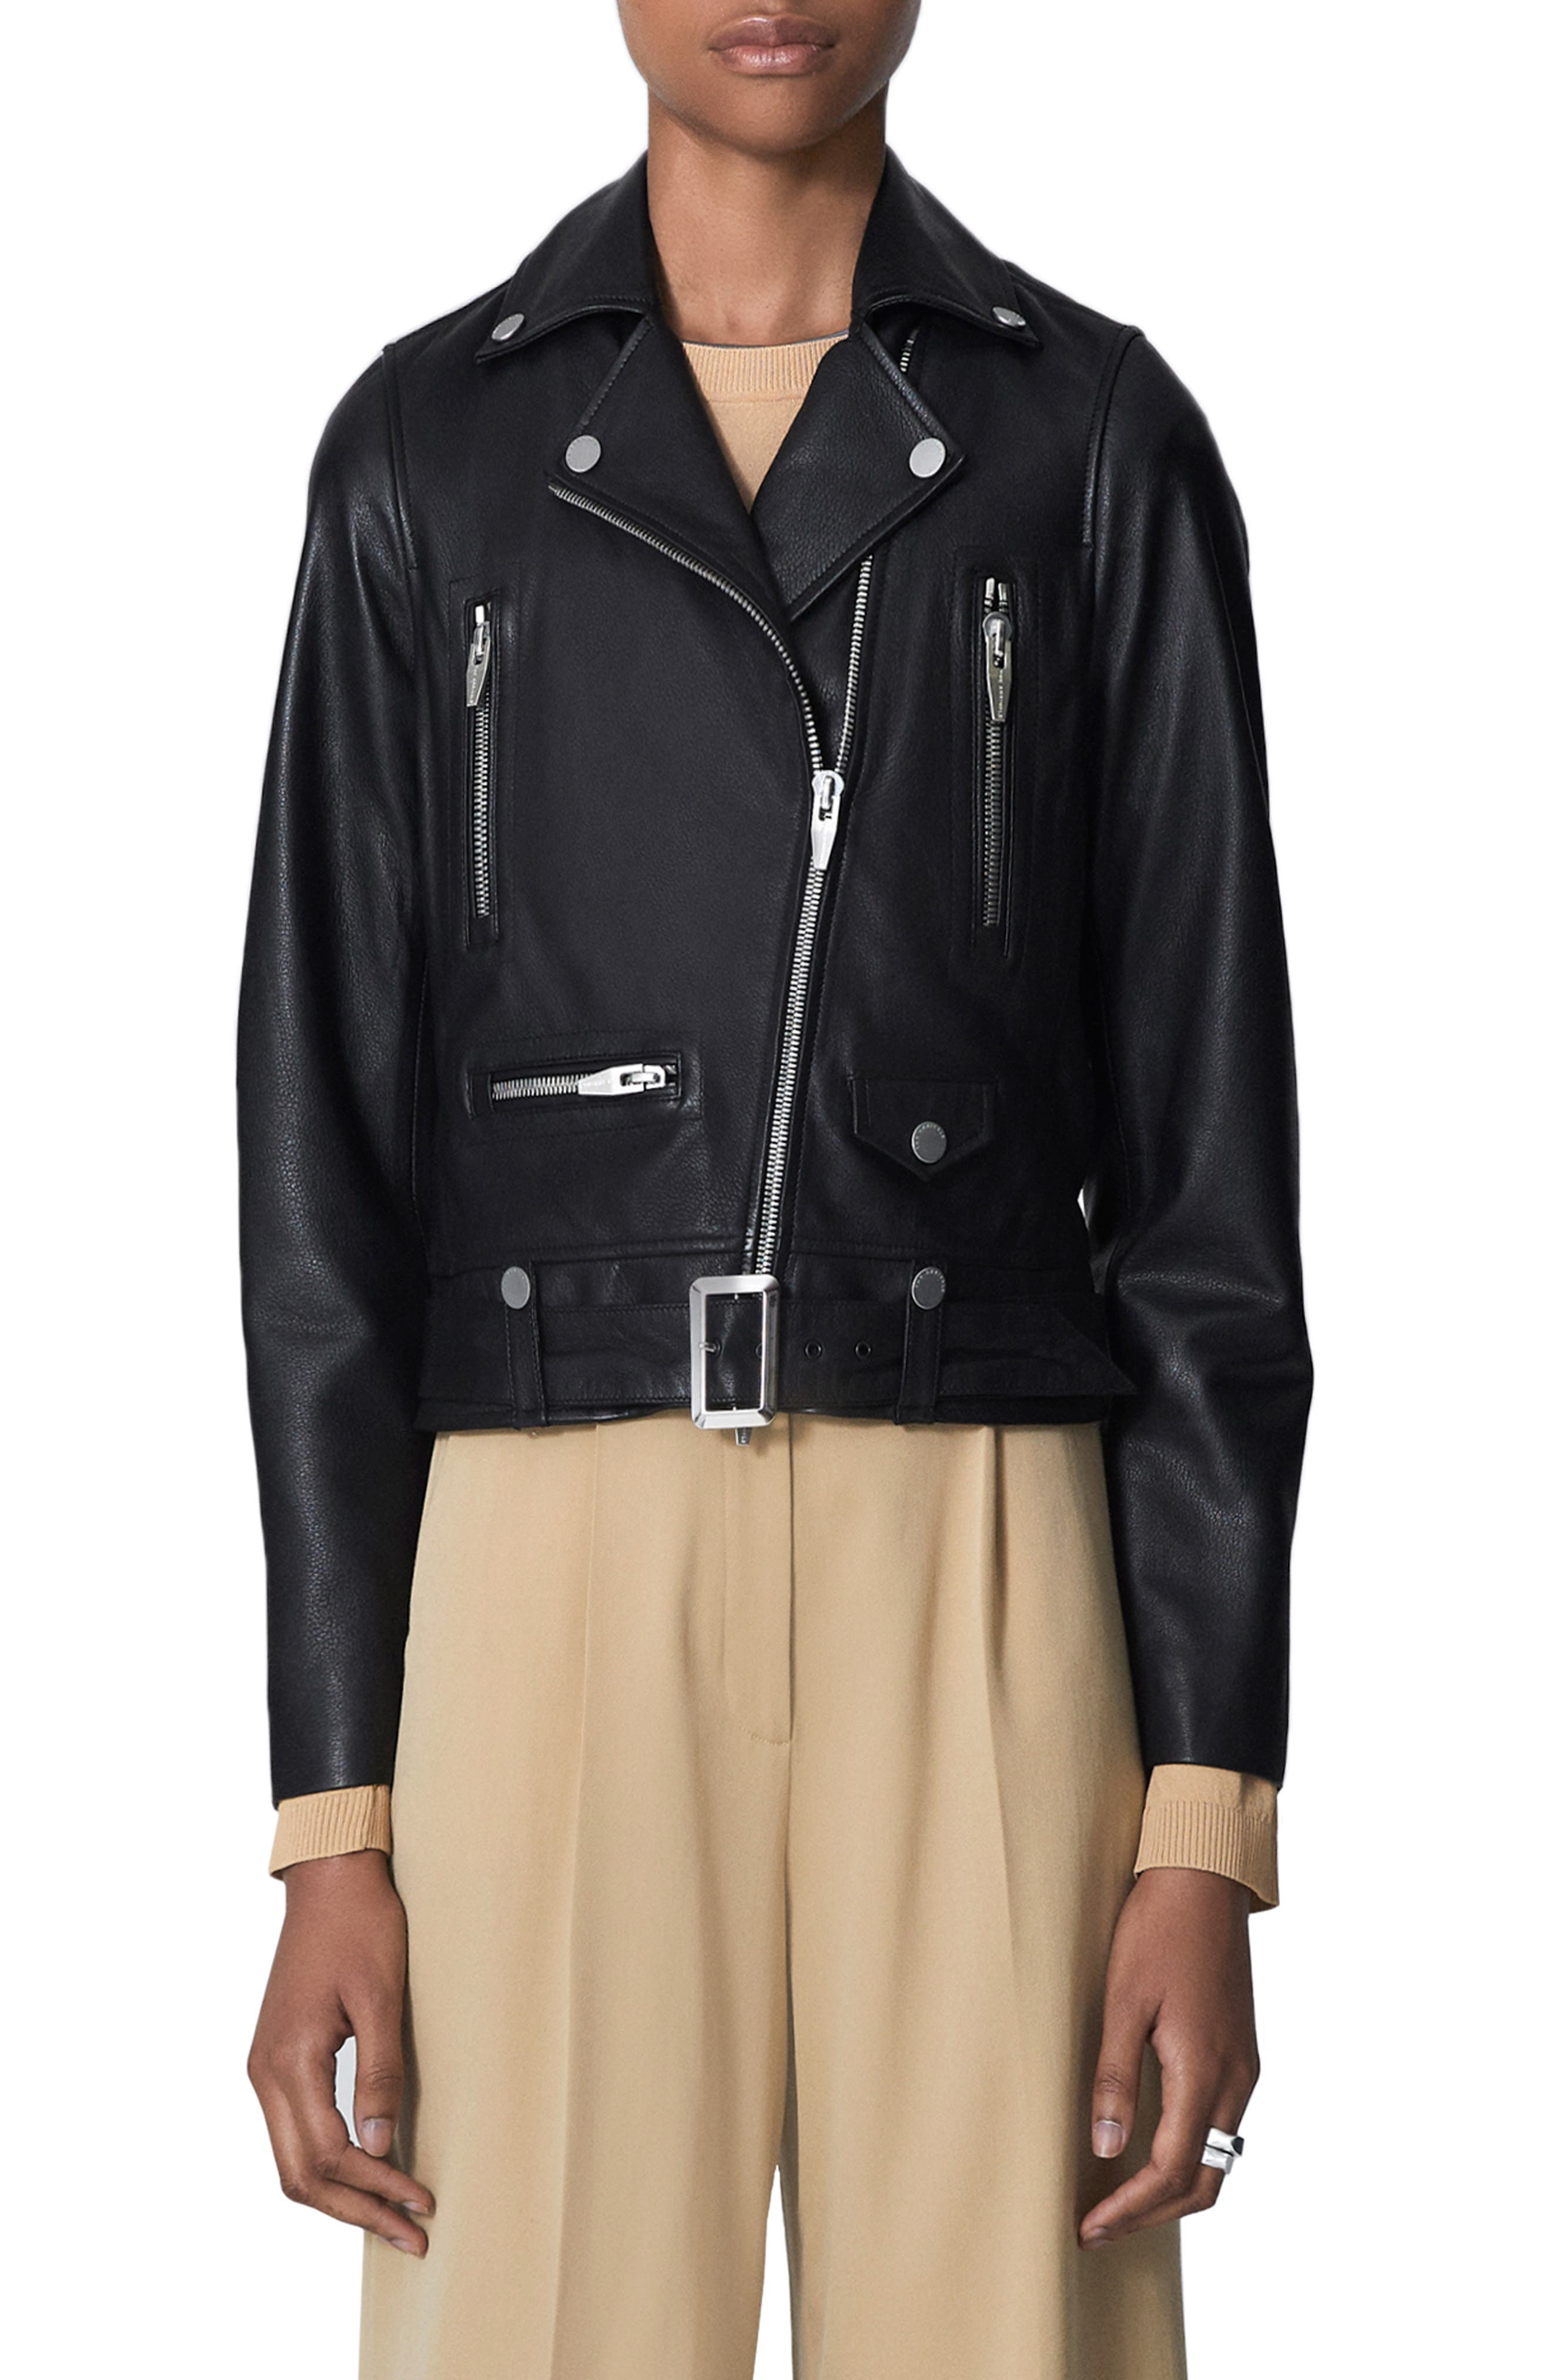 THE ARRIVALS Clo Ii Leather Jacket in Black